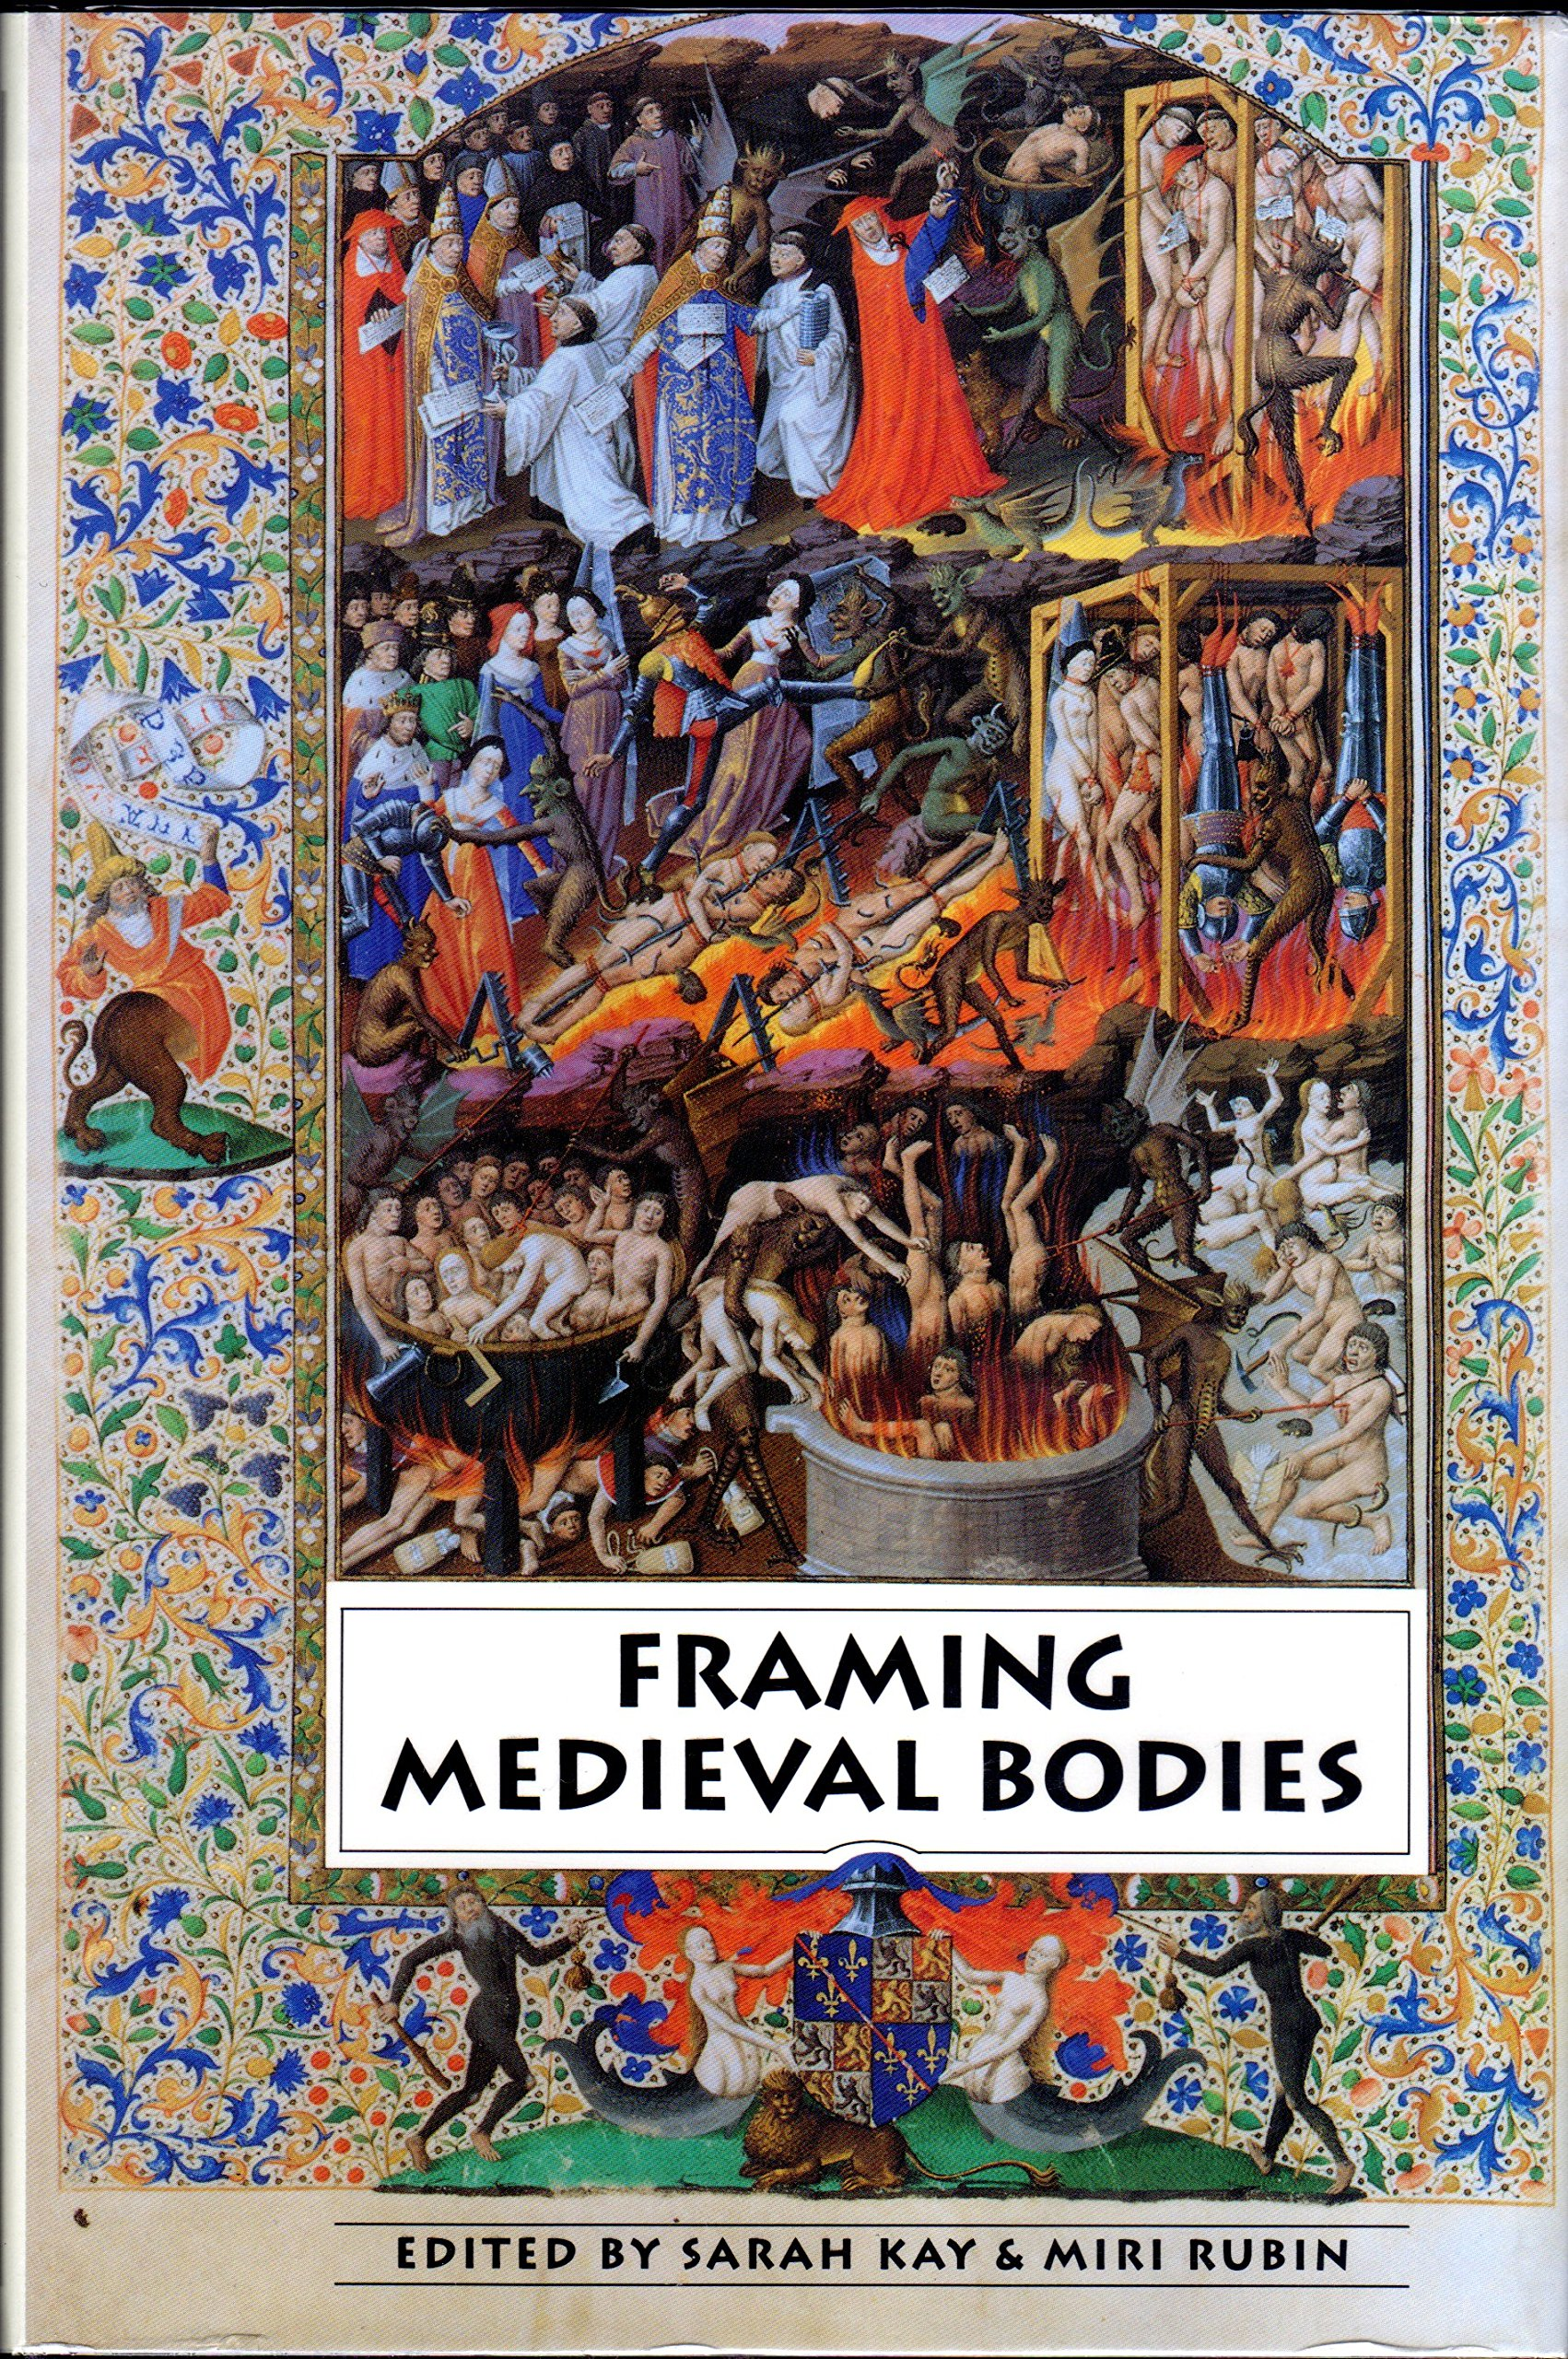 Framing Medieval Bodies: Amazon.de: Sarah Kay, Miri Rubin ...